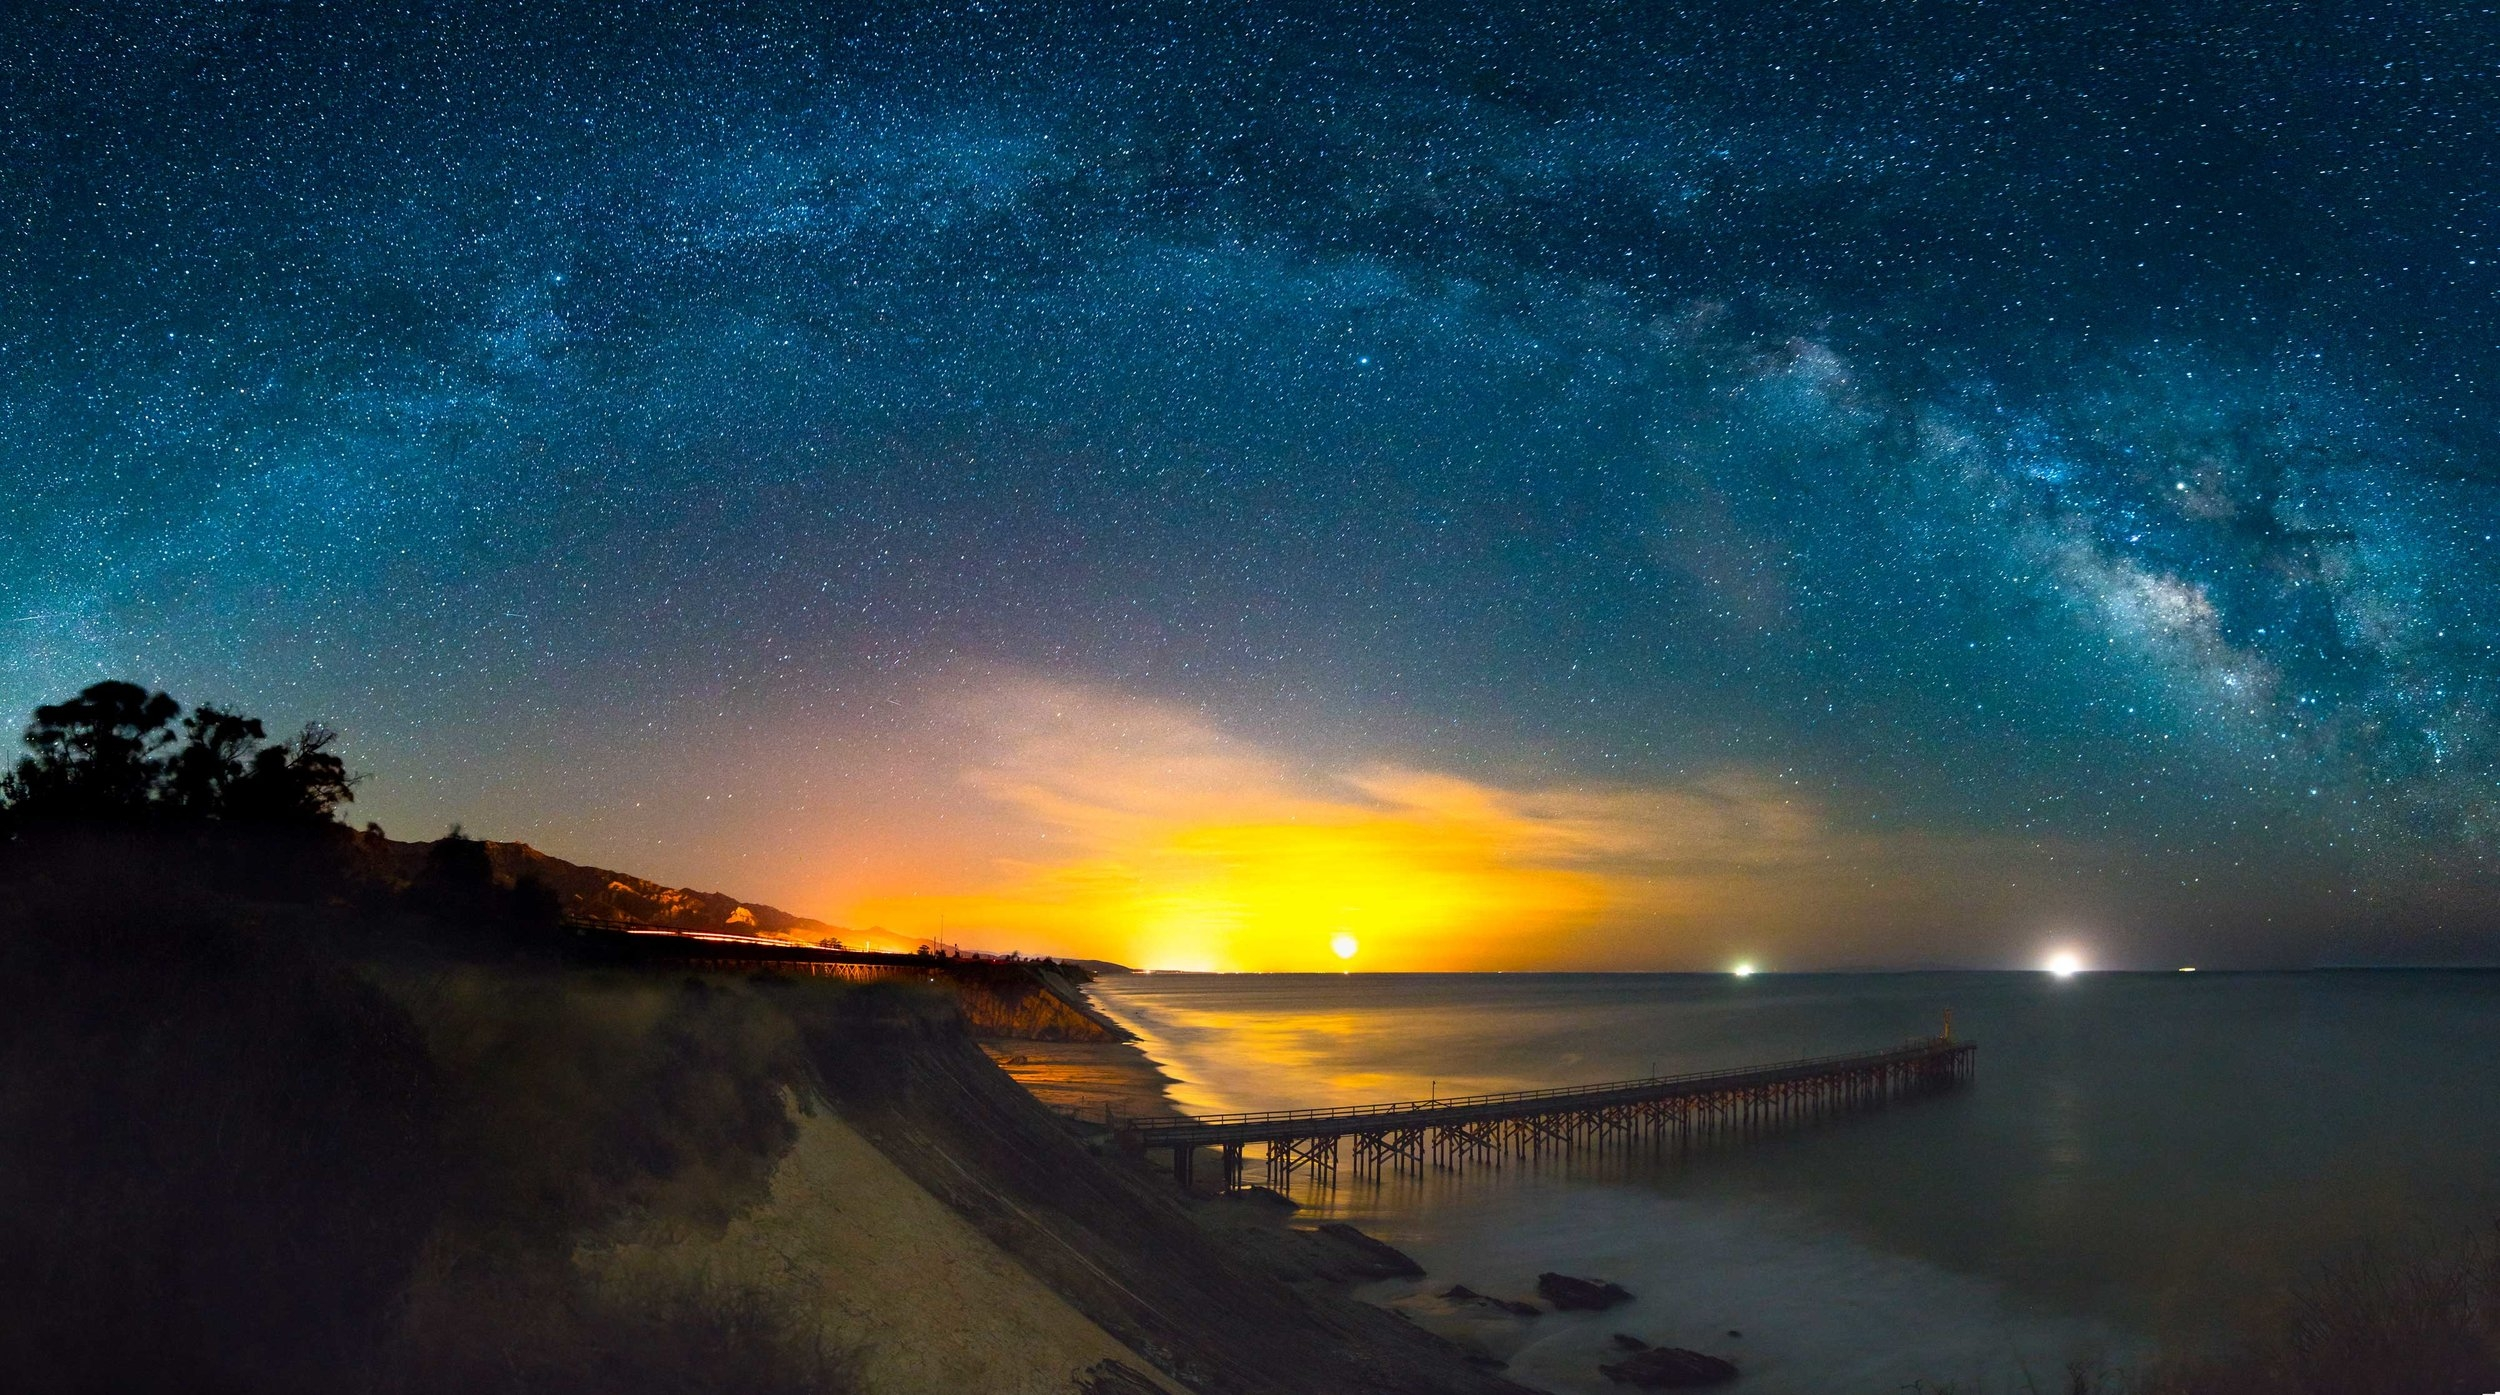 Panorama of the Milky Way, With Moonrise At Center. Gaviota Beach, CA. 6 portrait oriented shots, F2.8, 30 sec., ISO 3200. Edited in Adobe Lightroom and Photoshop.